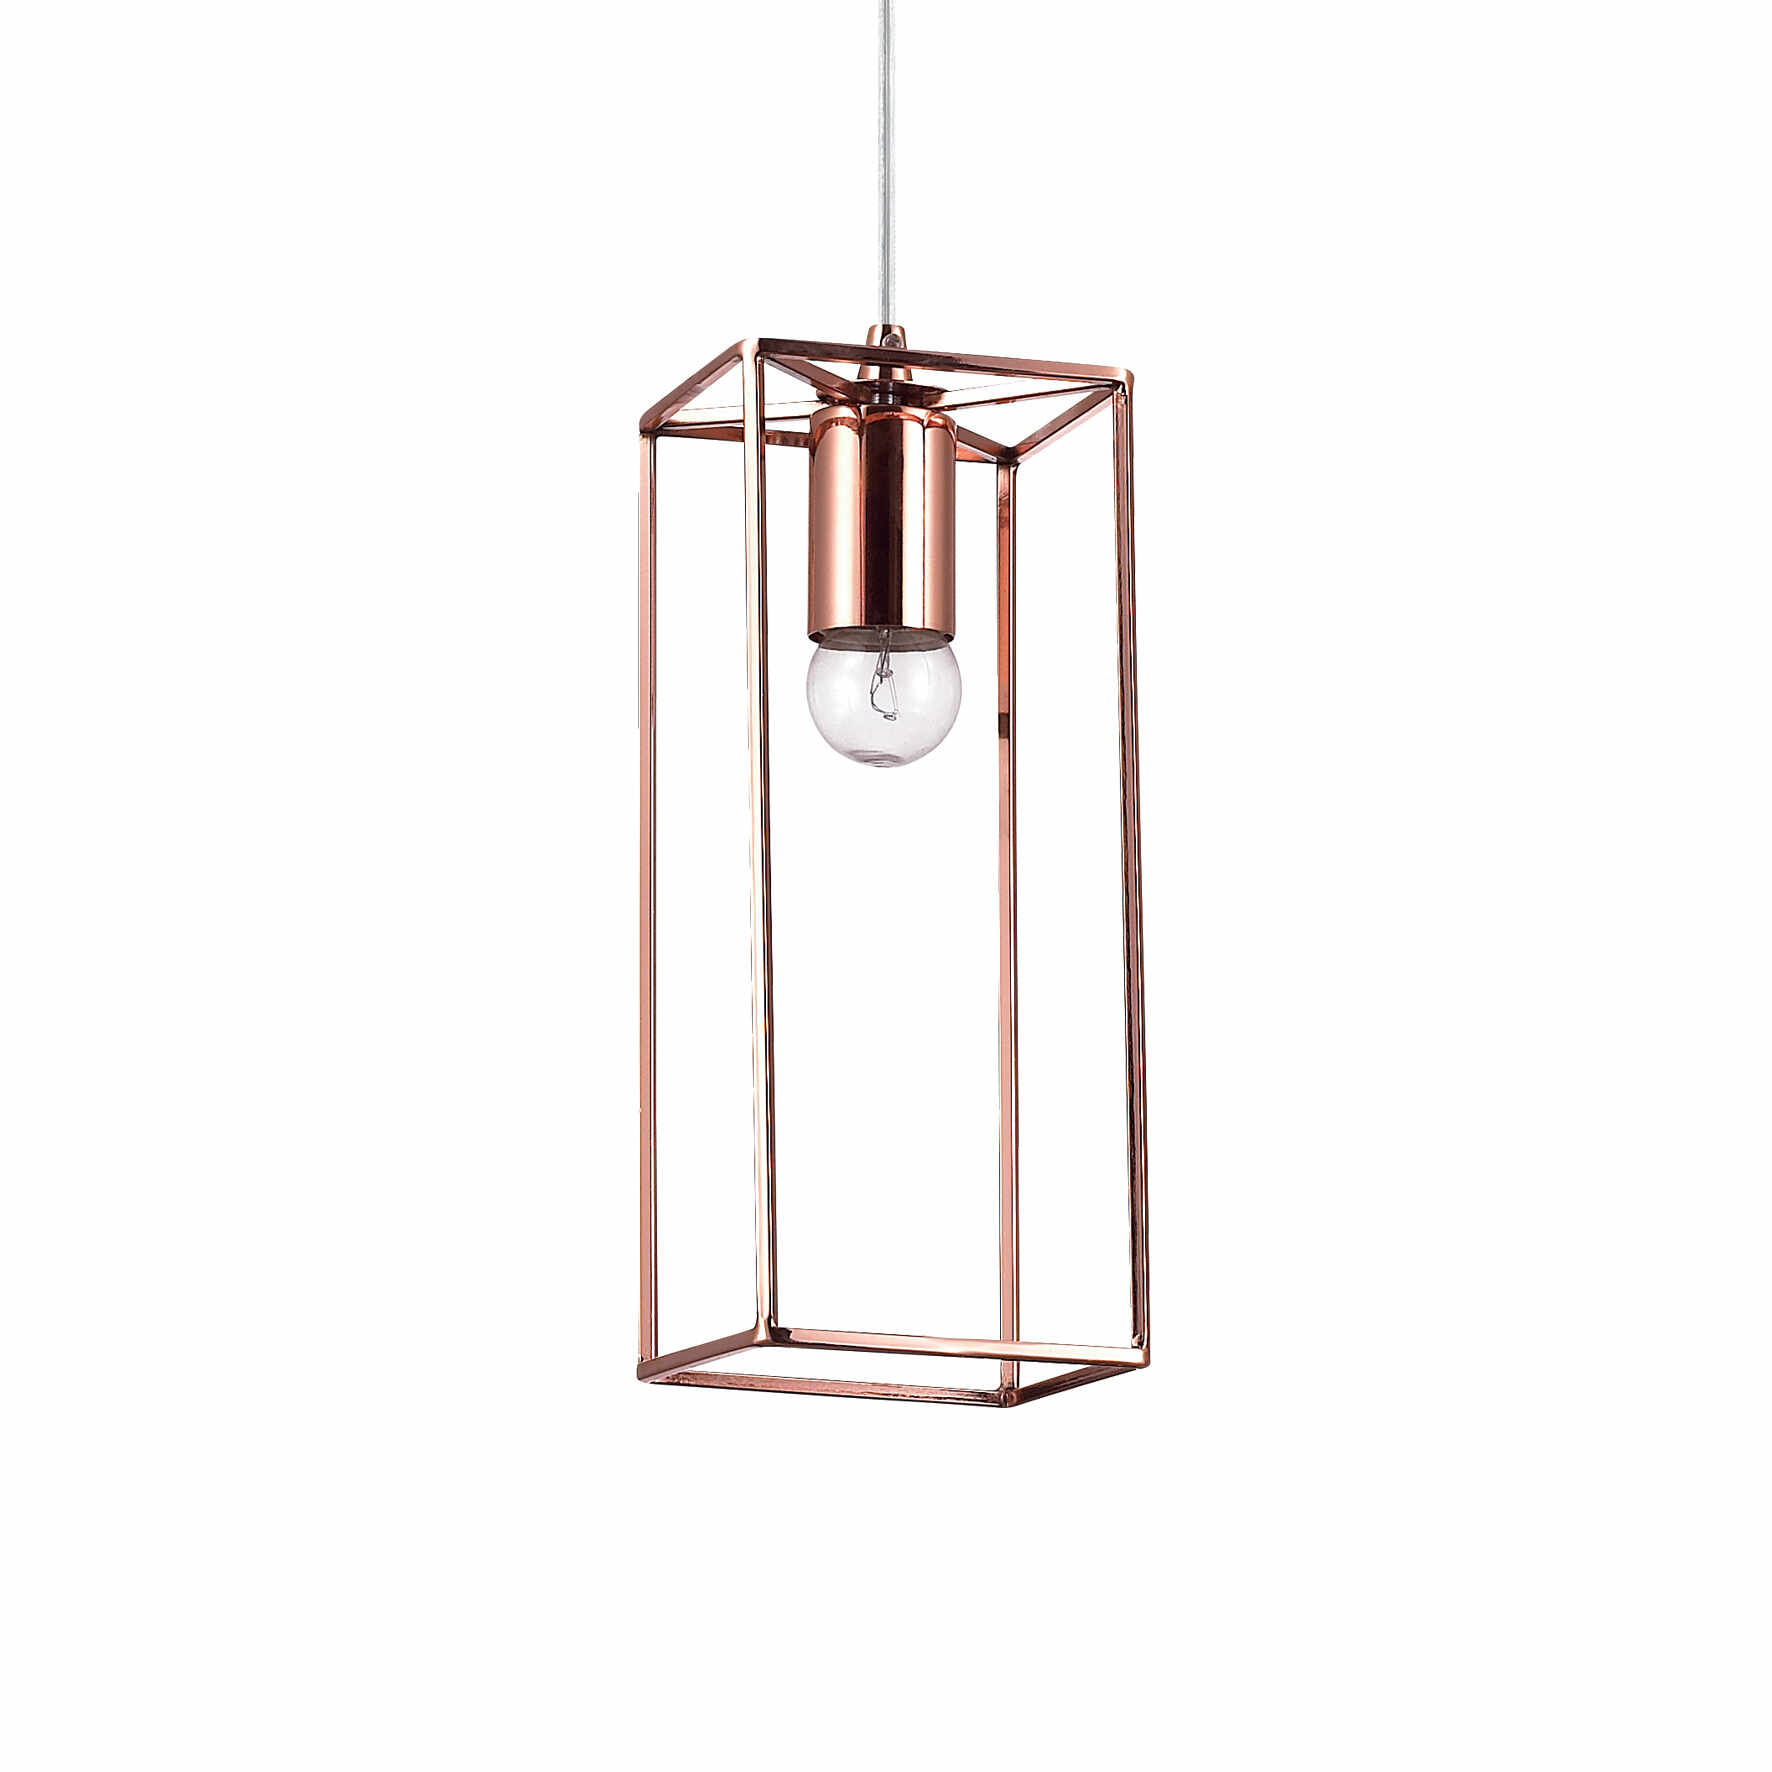 Lustra Volt SP1 Copper la pret 283 lei